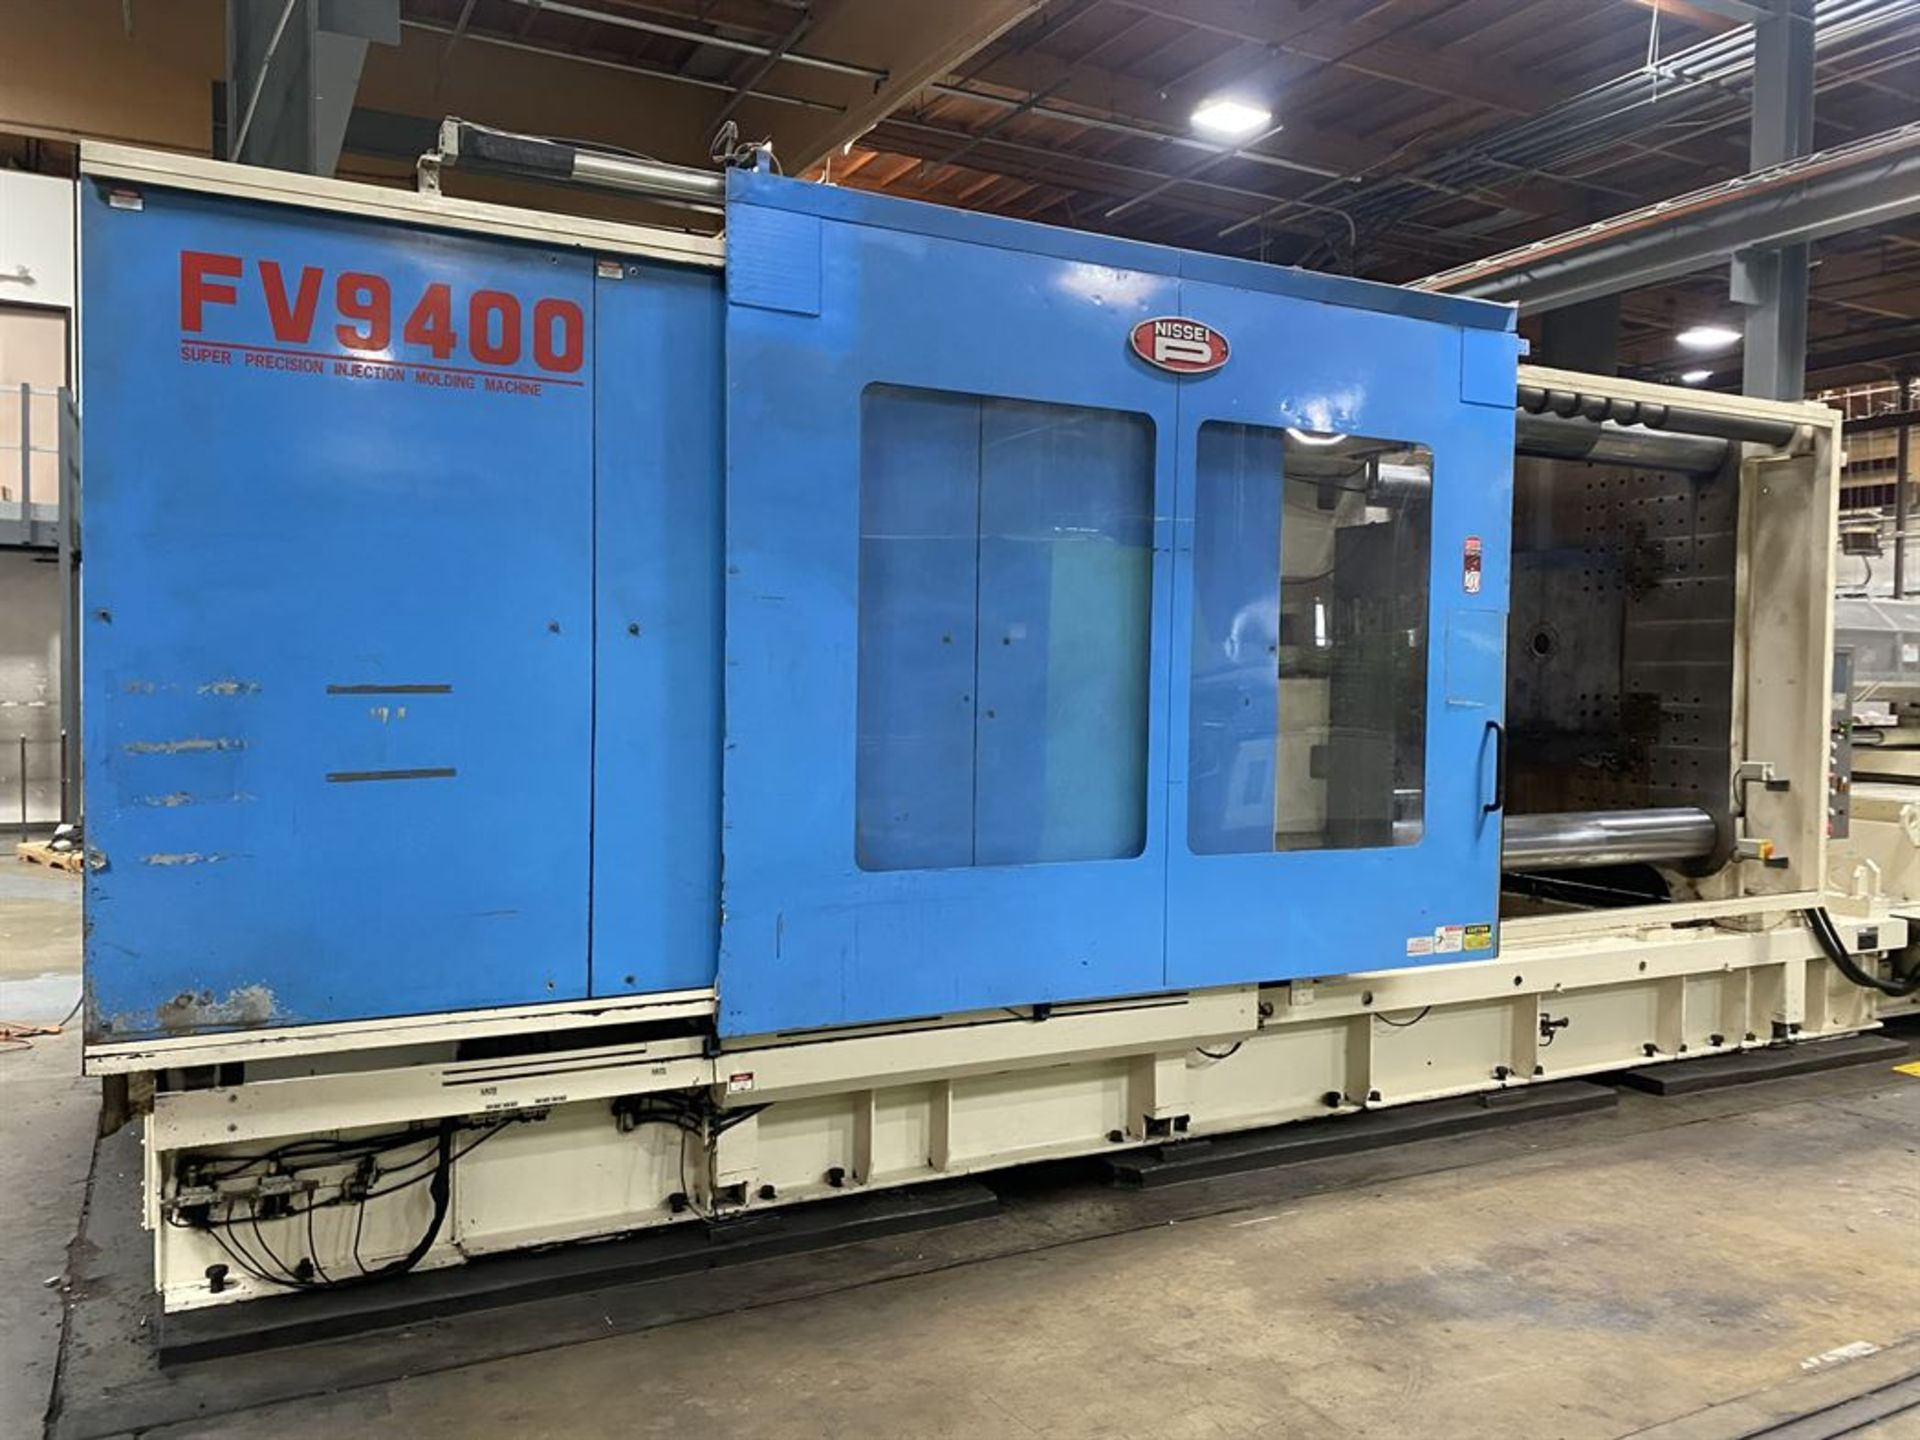 Lot 200 - NISSEI FV9400 1450 Ton Hydraulic Injection Molder, s/n SJ94S003, w/ 400 oz Shot Size, GP Screw